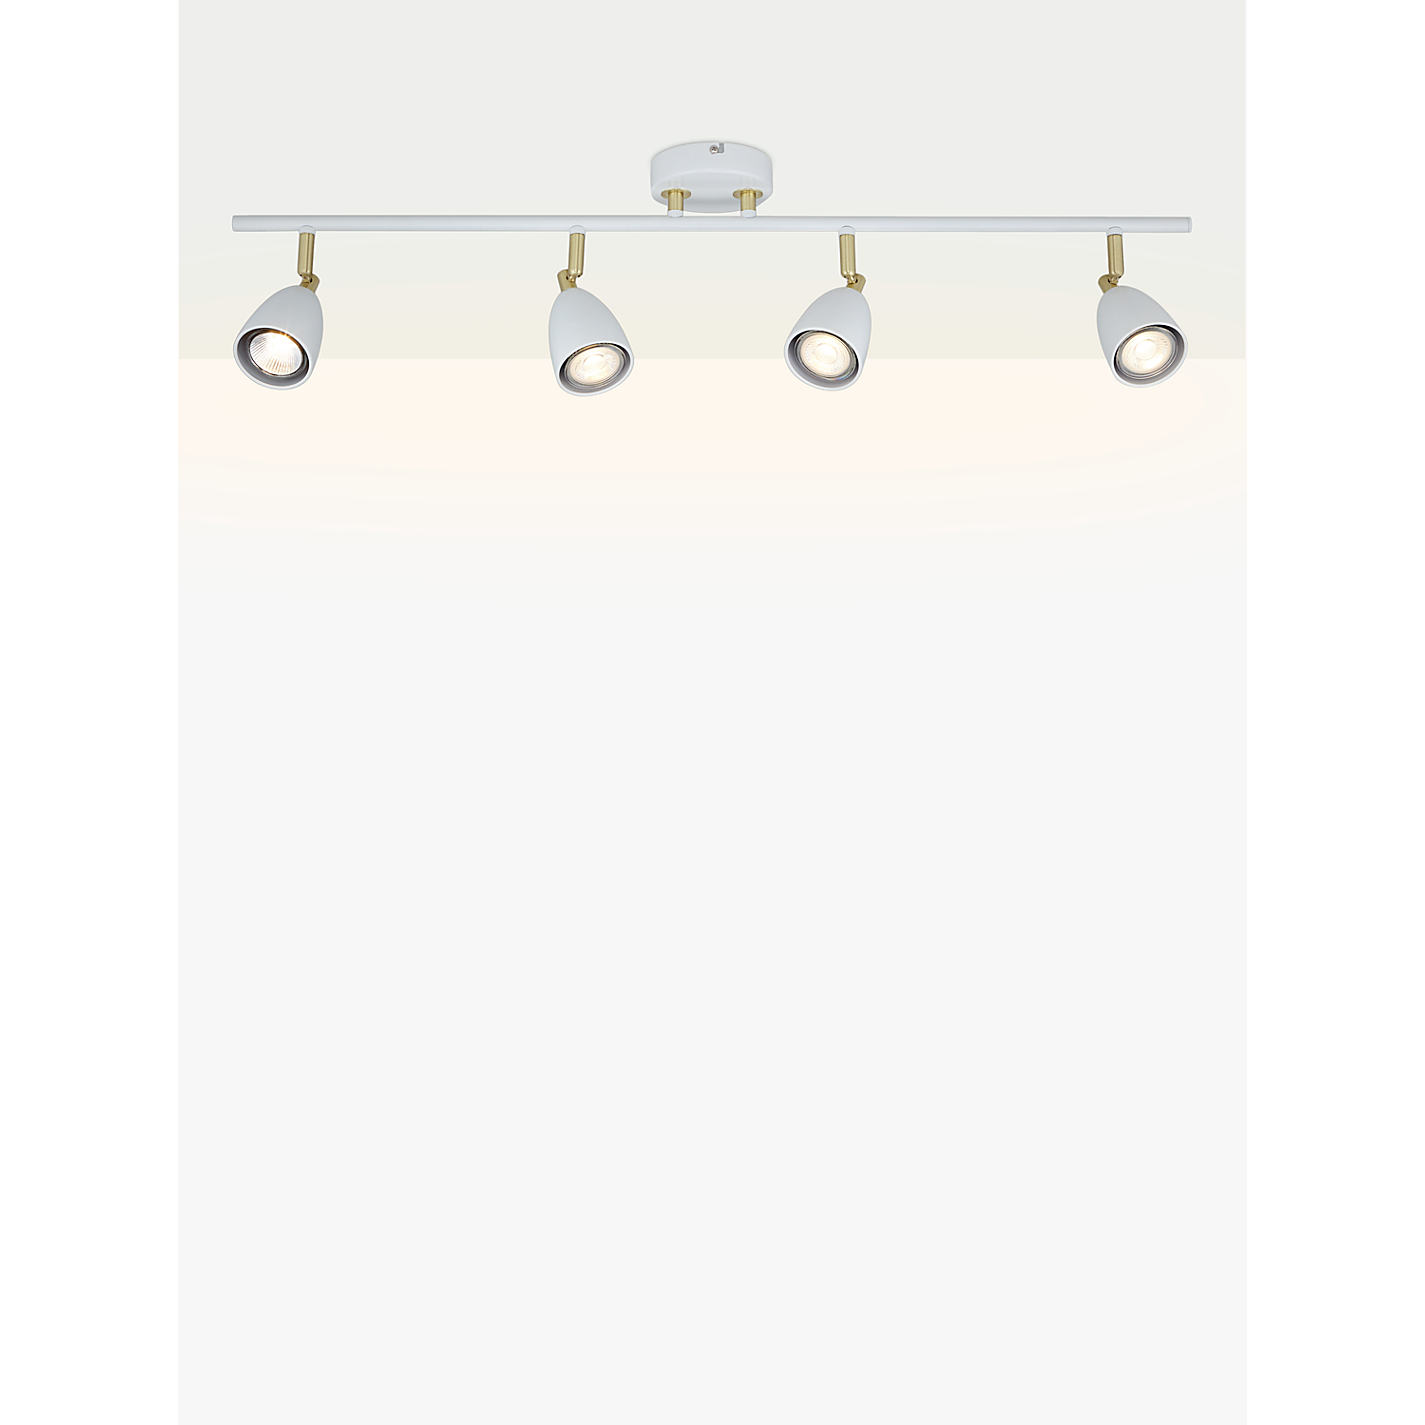 Buy john lewis sasha gu10 led spotlight bar 4 light ivorybrass buy john lewis sasha gu10 led spotlight bar 4 light ivorybrass online mozeypictures Images